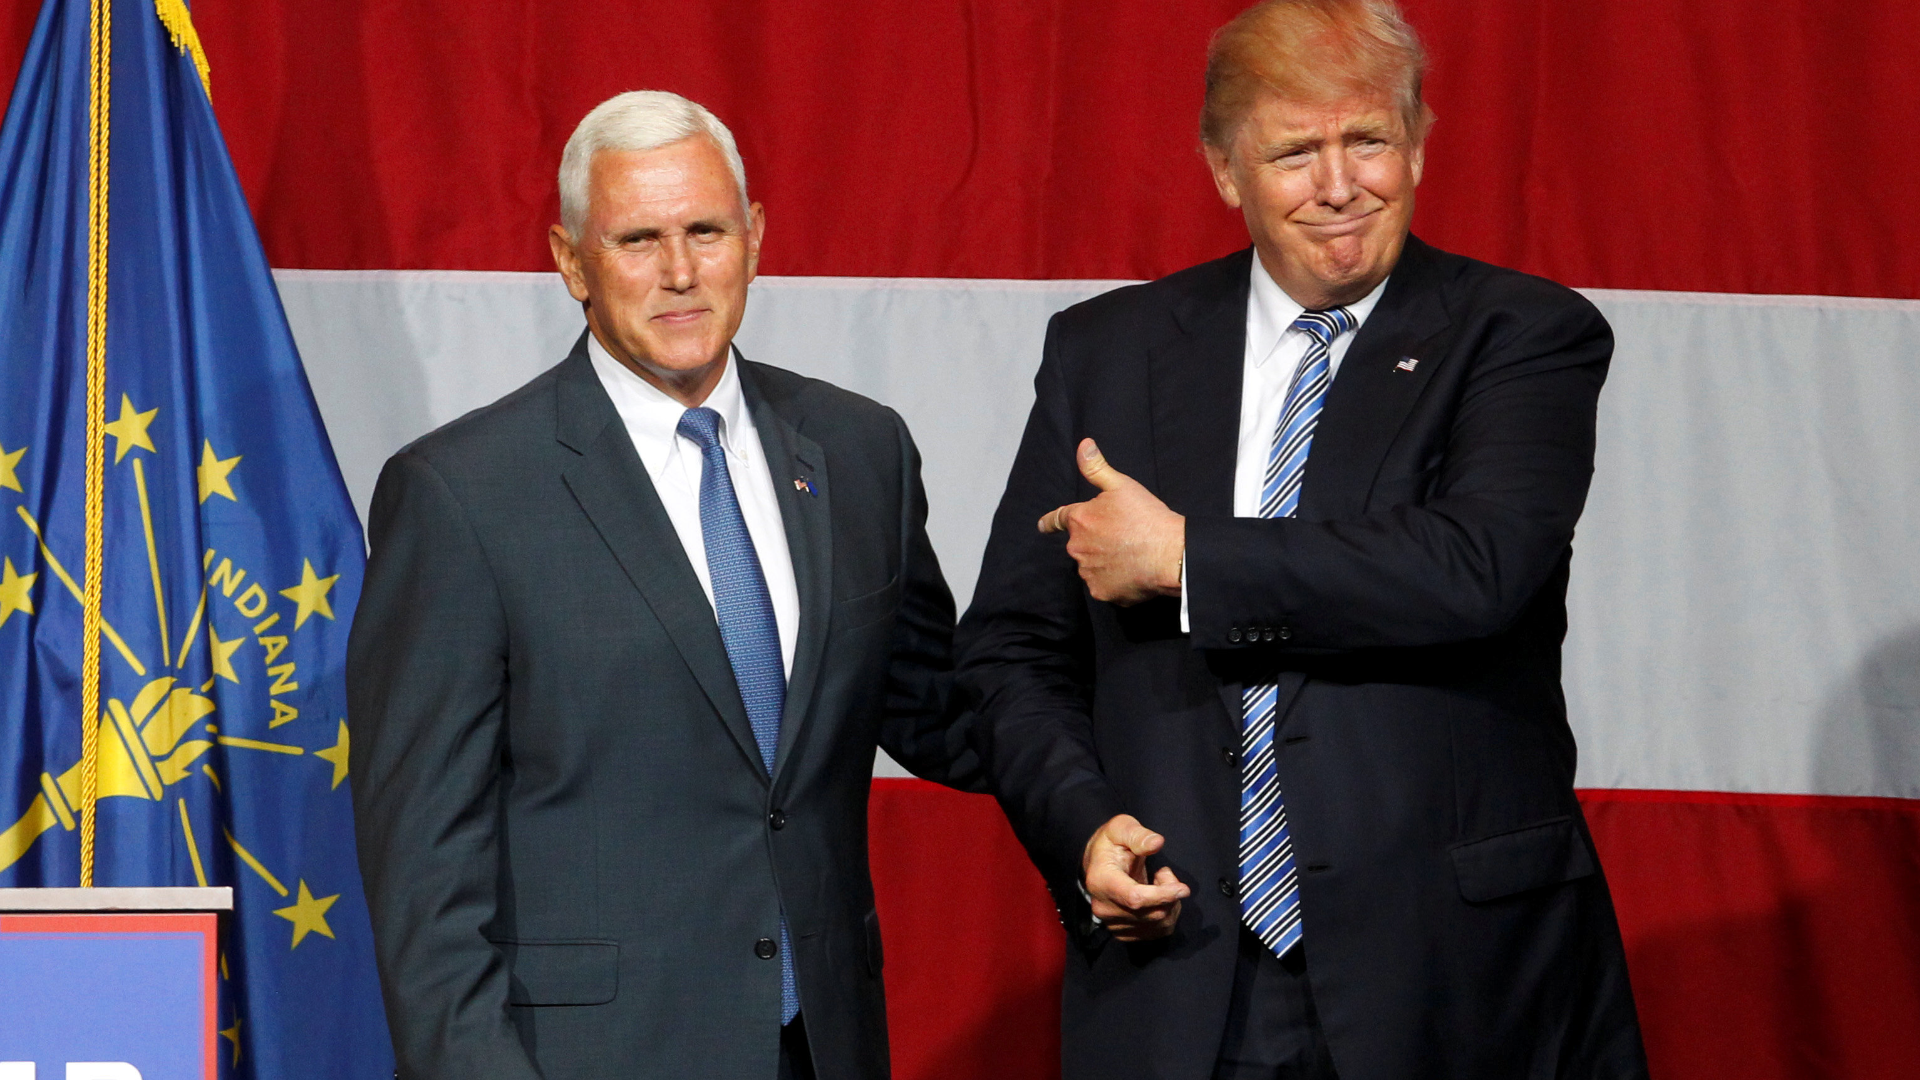 Mike Pence Used Campaign Funds To Pay His Mortgage And It Cost Him An Election The Washington Post